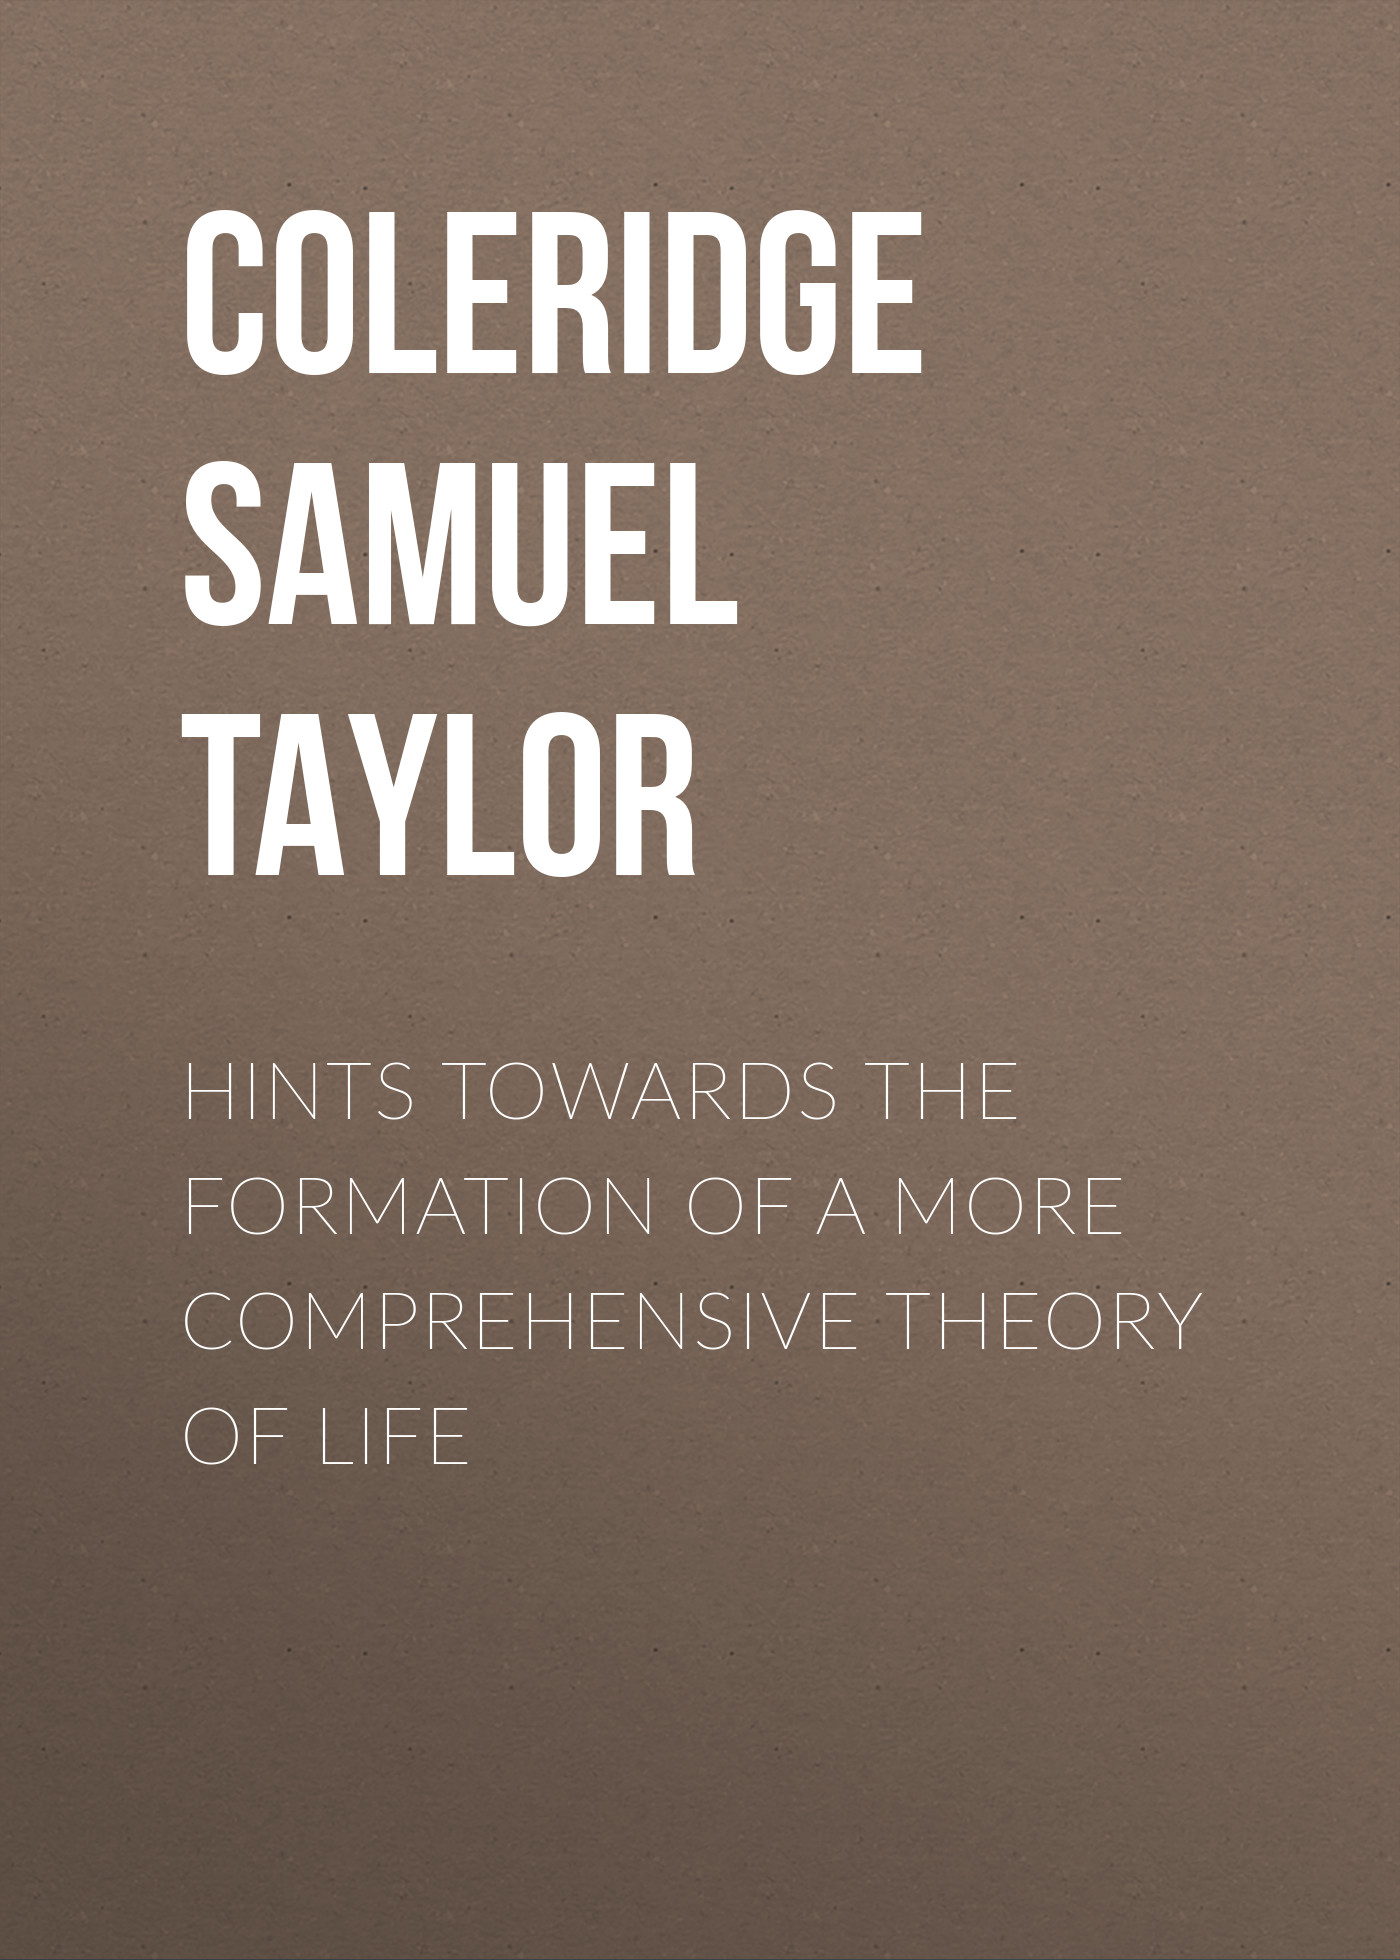 Coleridge Samuel Taylor Hints towards the formation of a more comprehensive theory of life